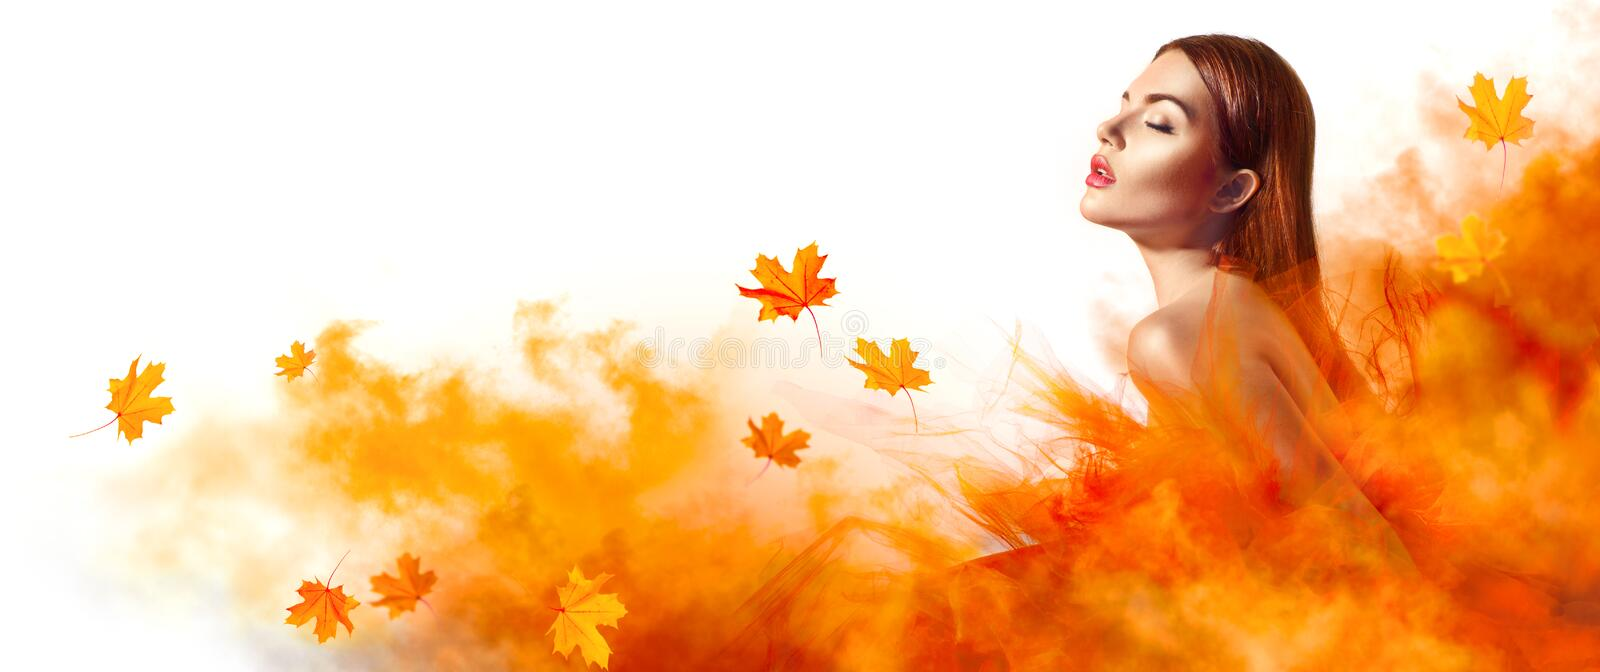 Beautiful fashion woman in autumn yellow dress with falling leaves. Posing in studio royalty free stock images